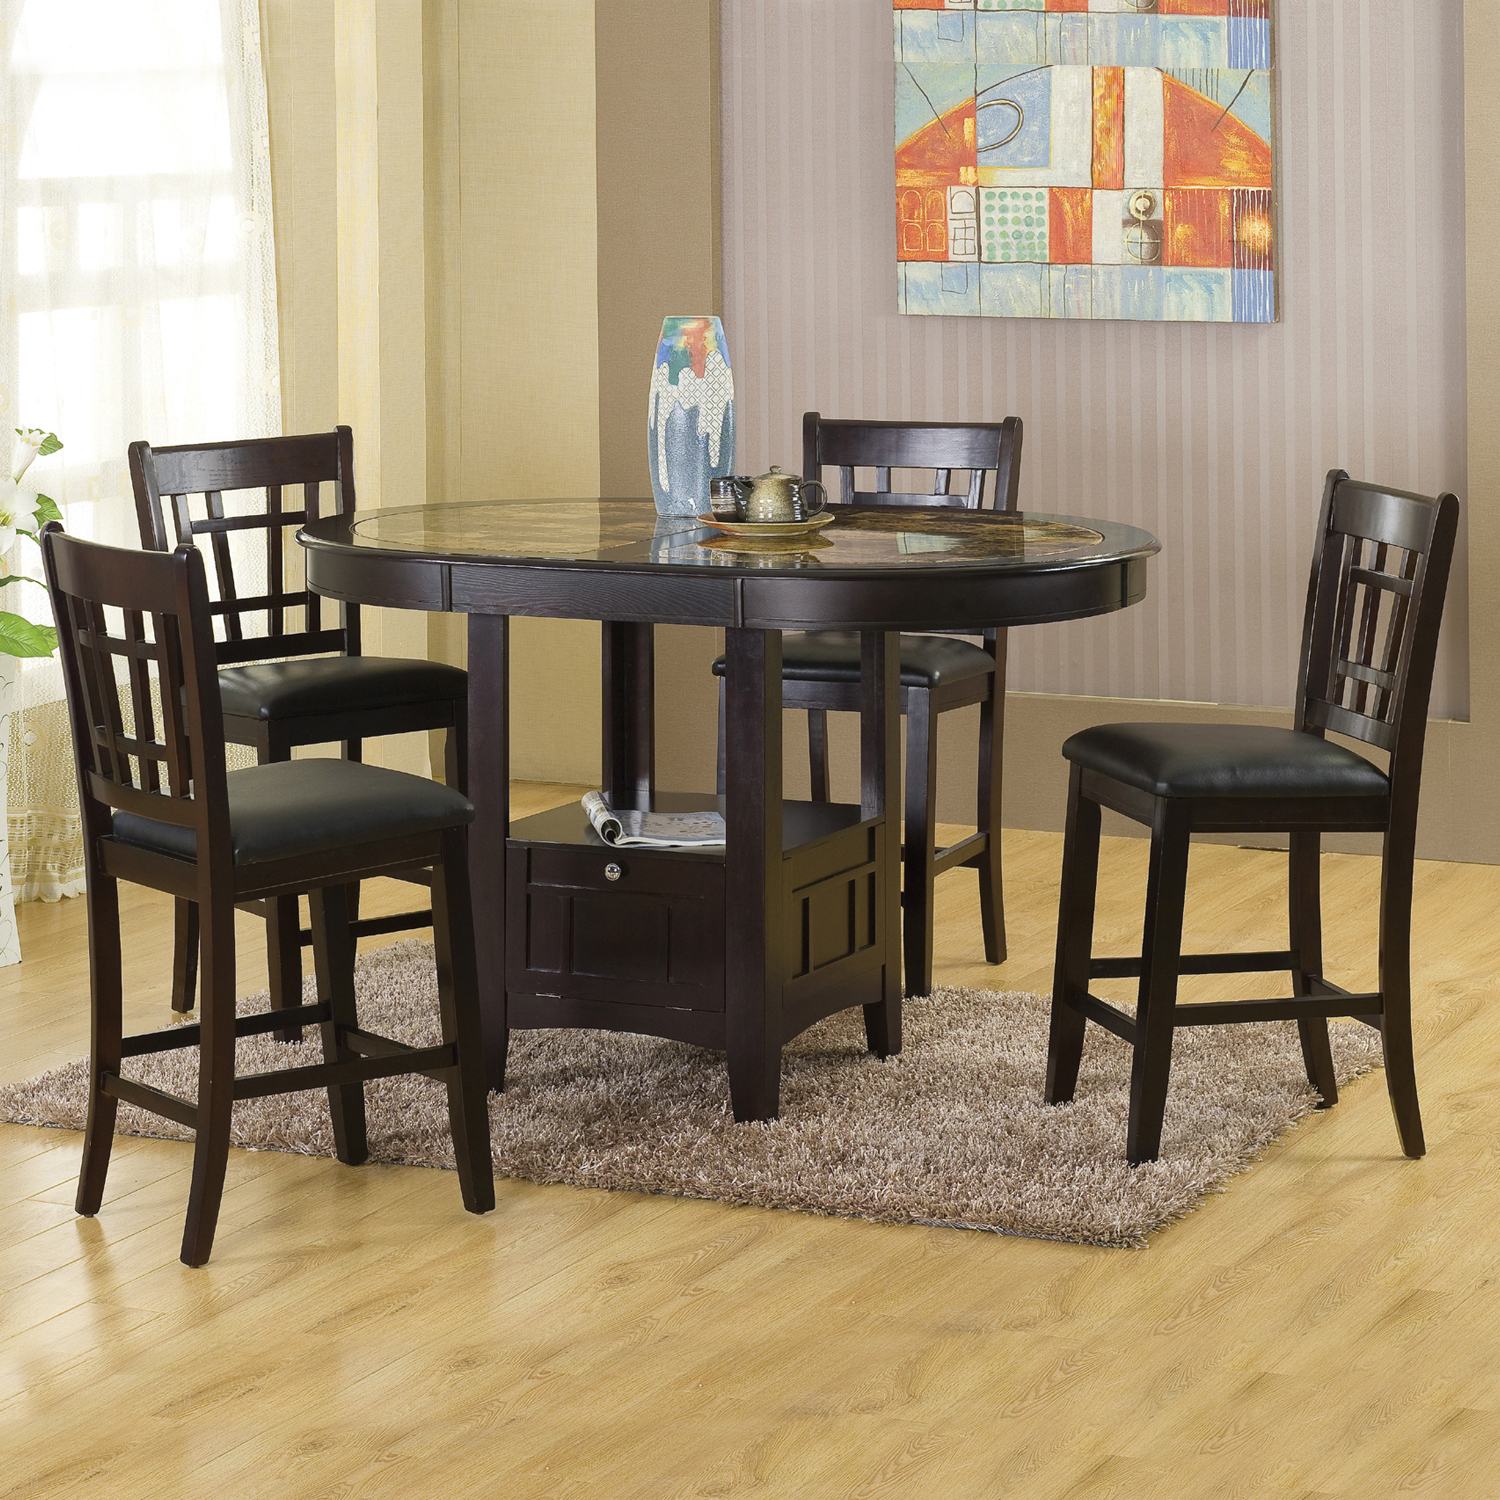 Home Source Charleston Capuccino Counter Height Table and 4 Chairs